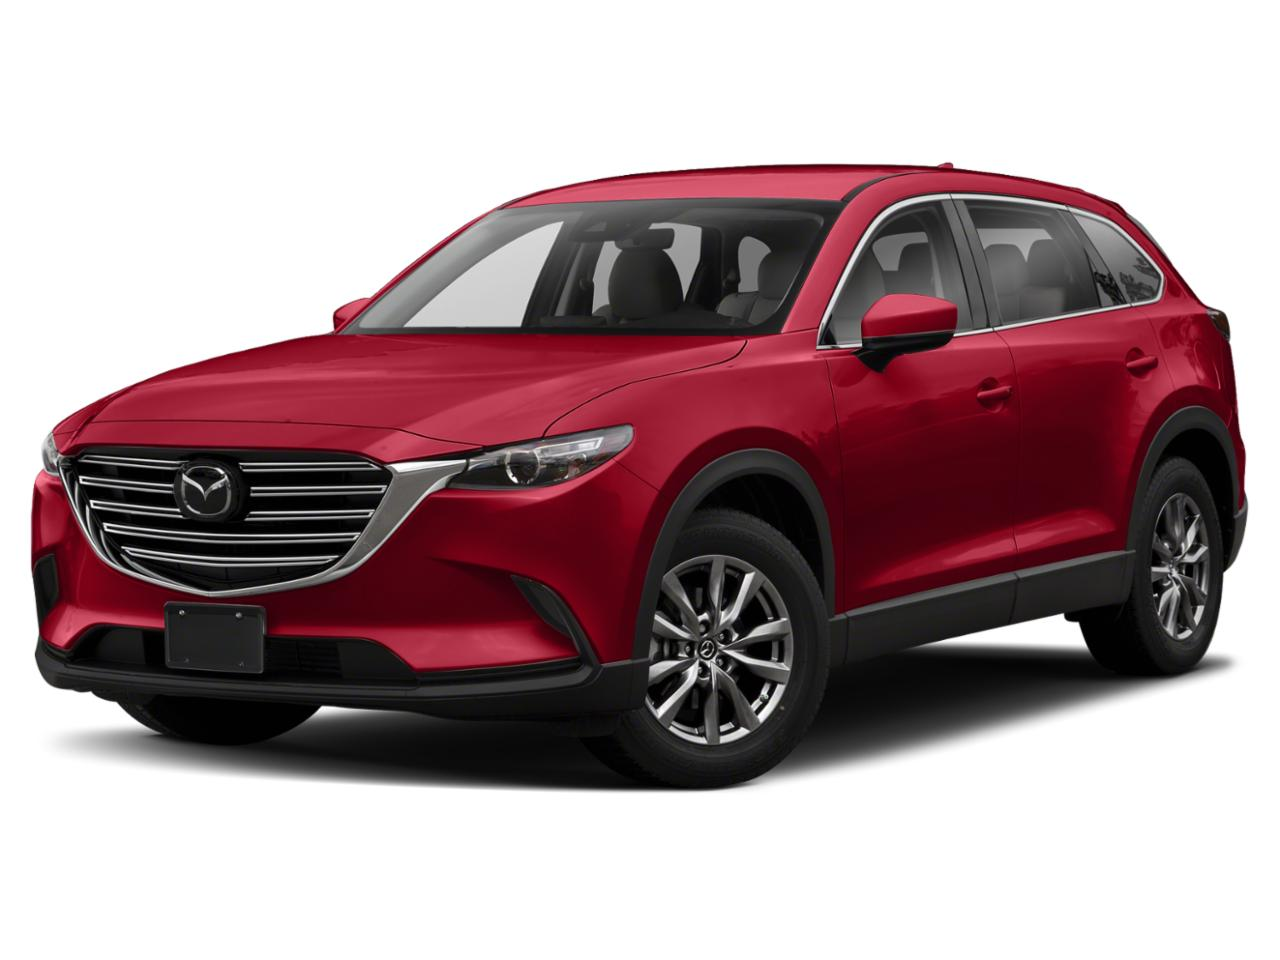 2020 Mazda CX-9 Vehicle Photo in West Chester, PA 19382